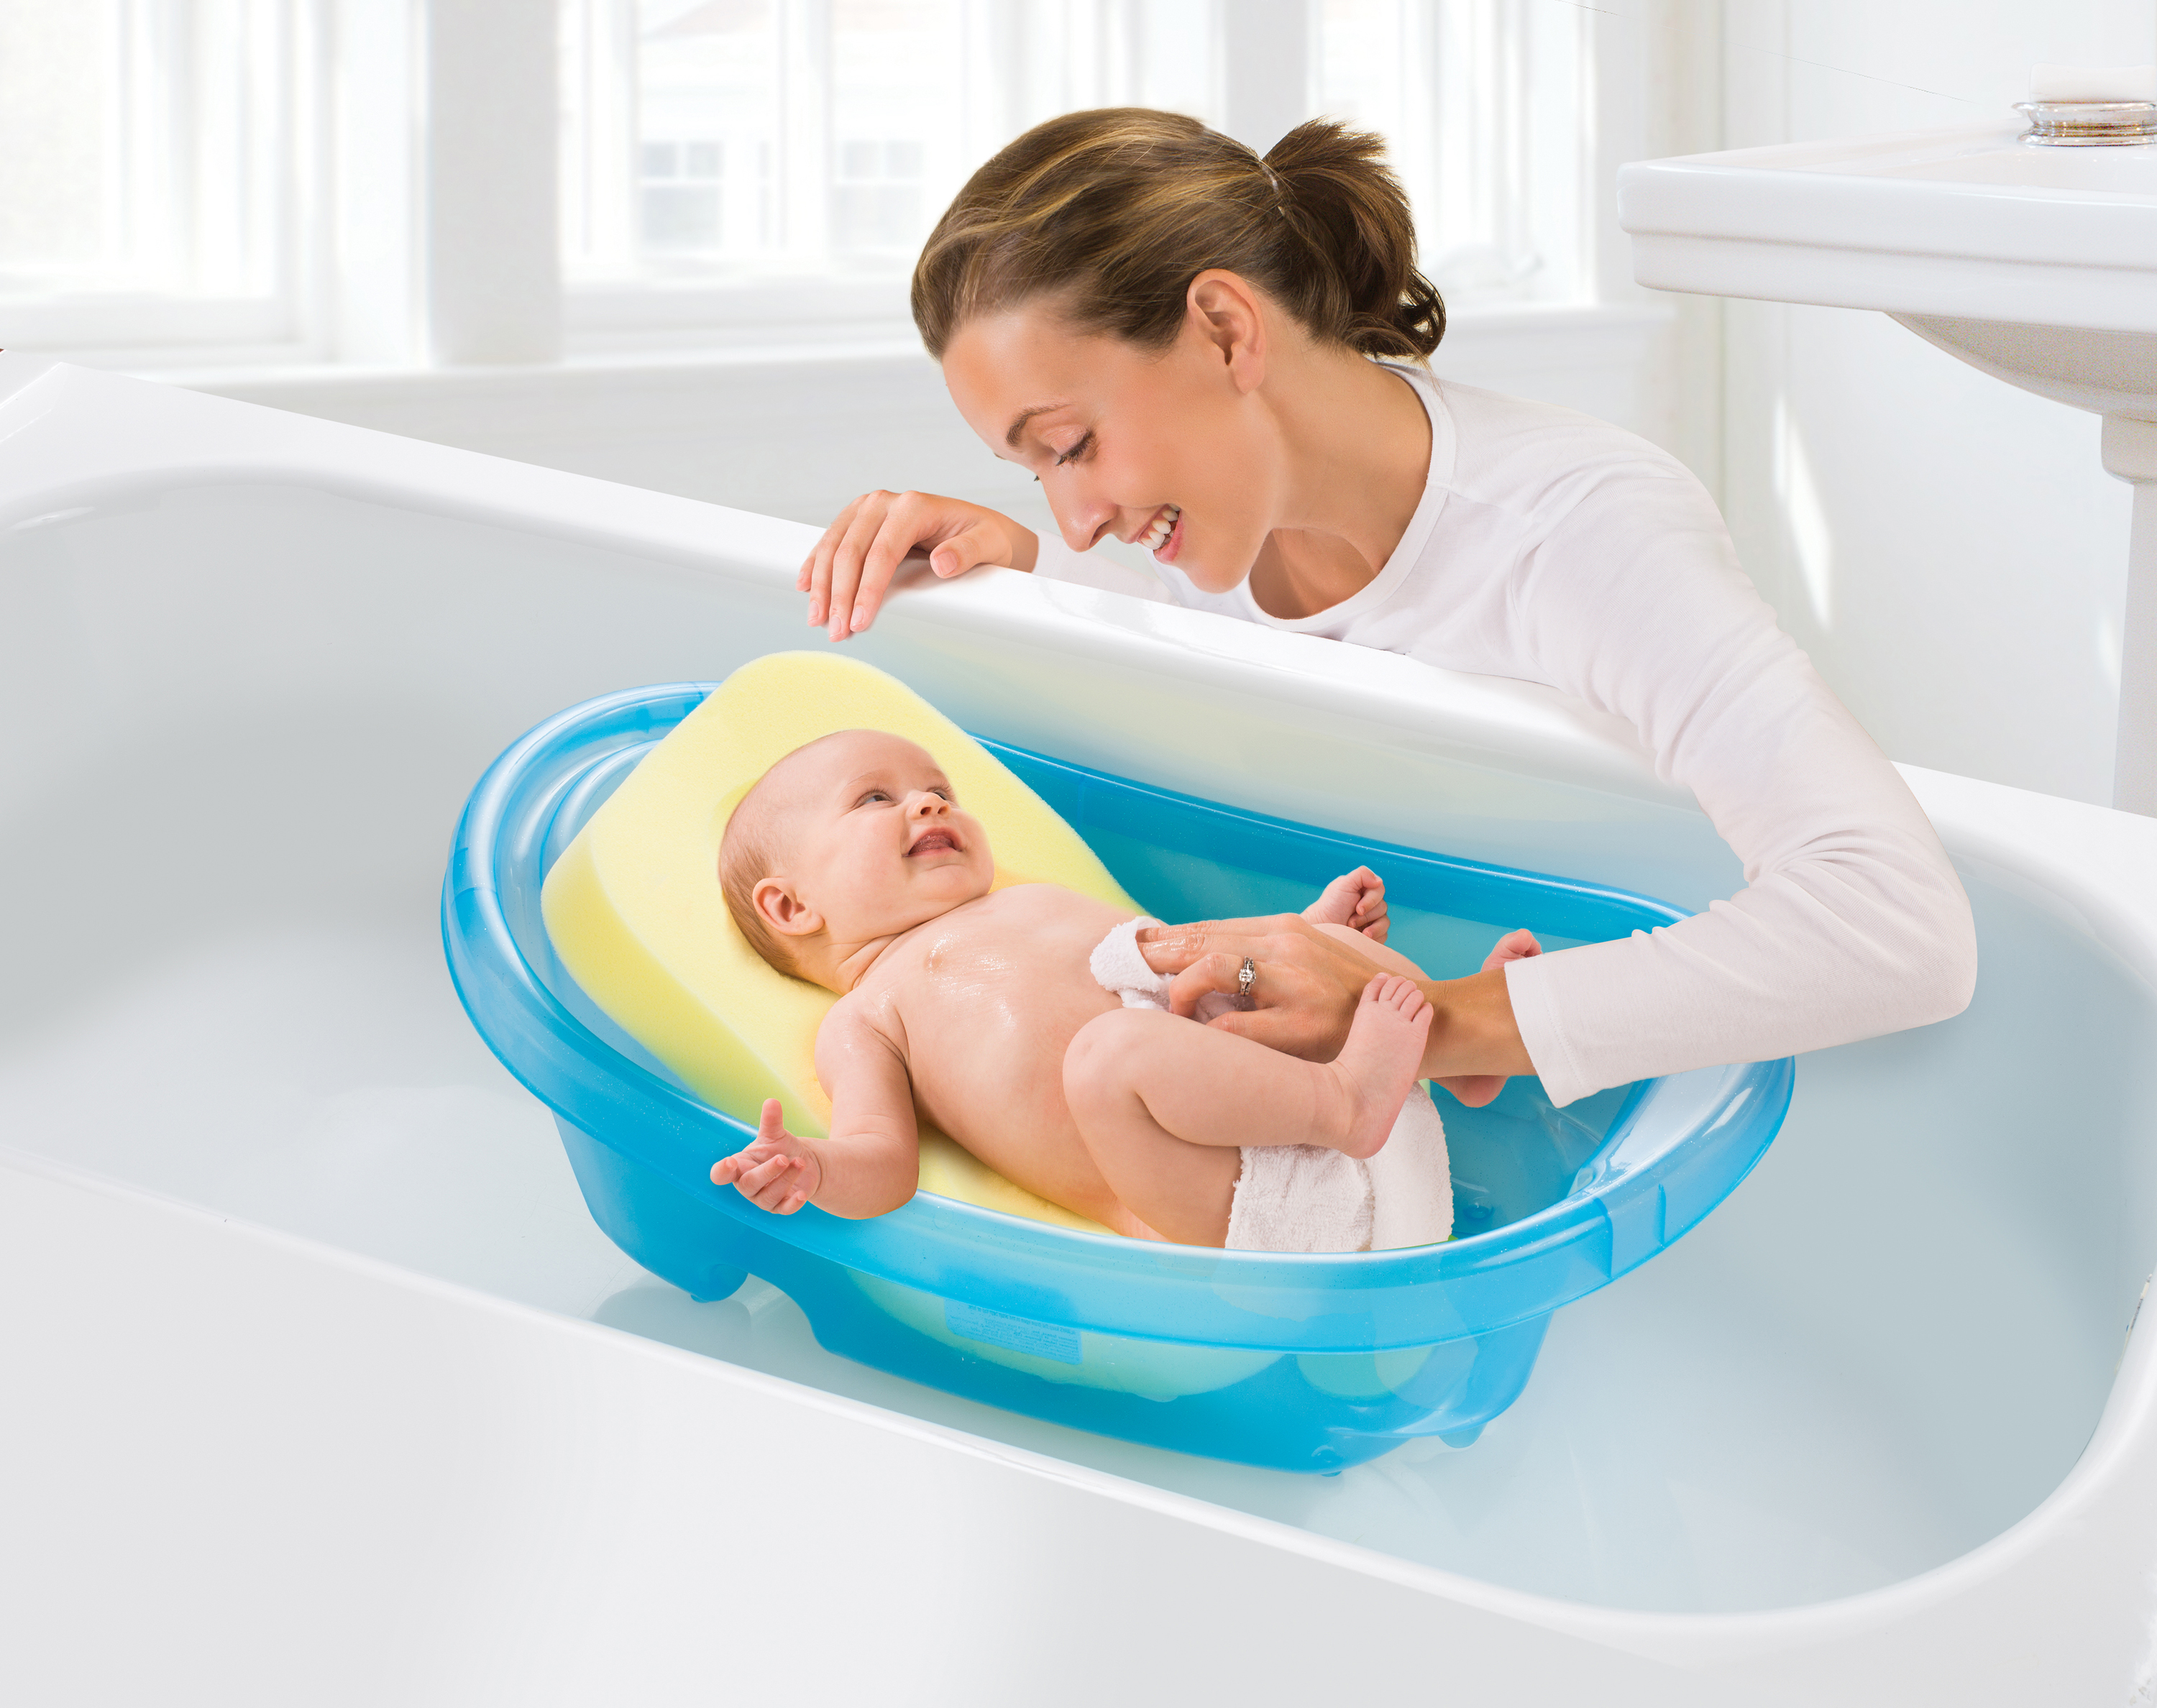 Comfy bath sponge summer infant baby products for What is the best bathtub